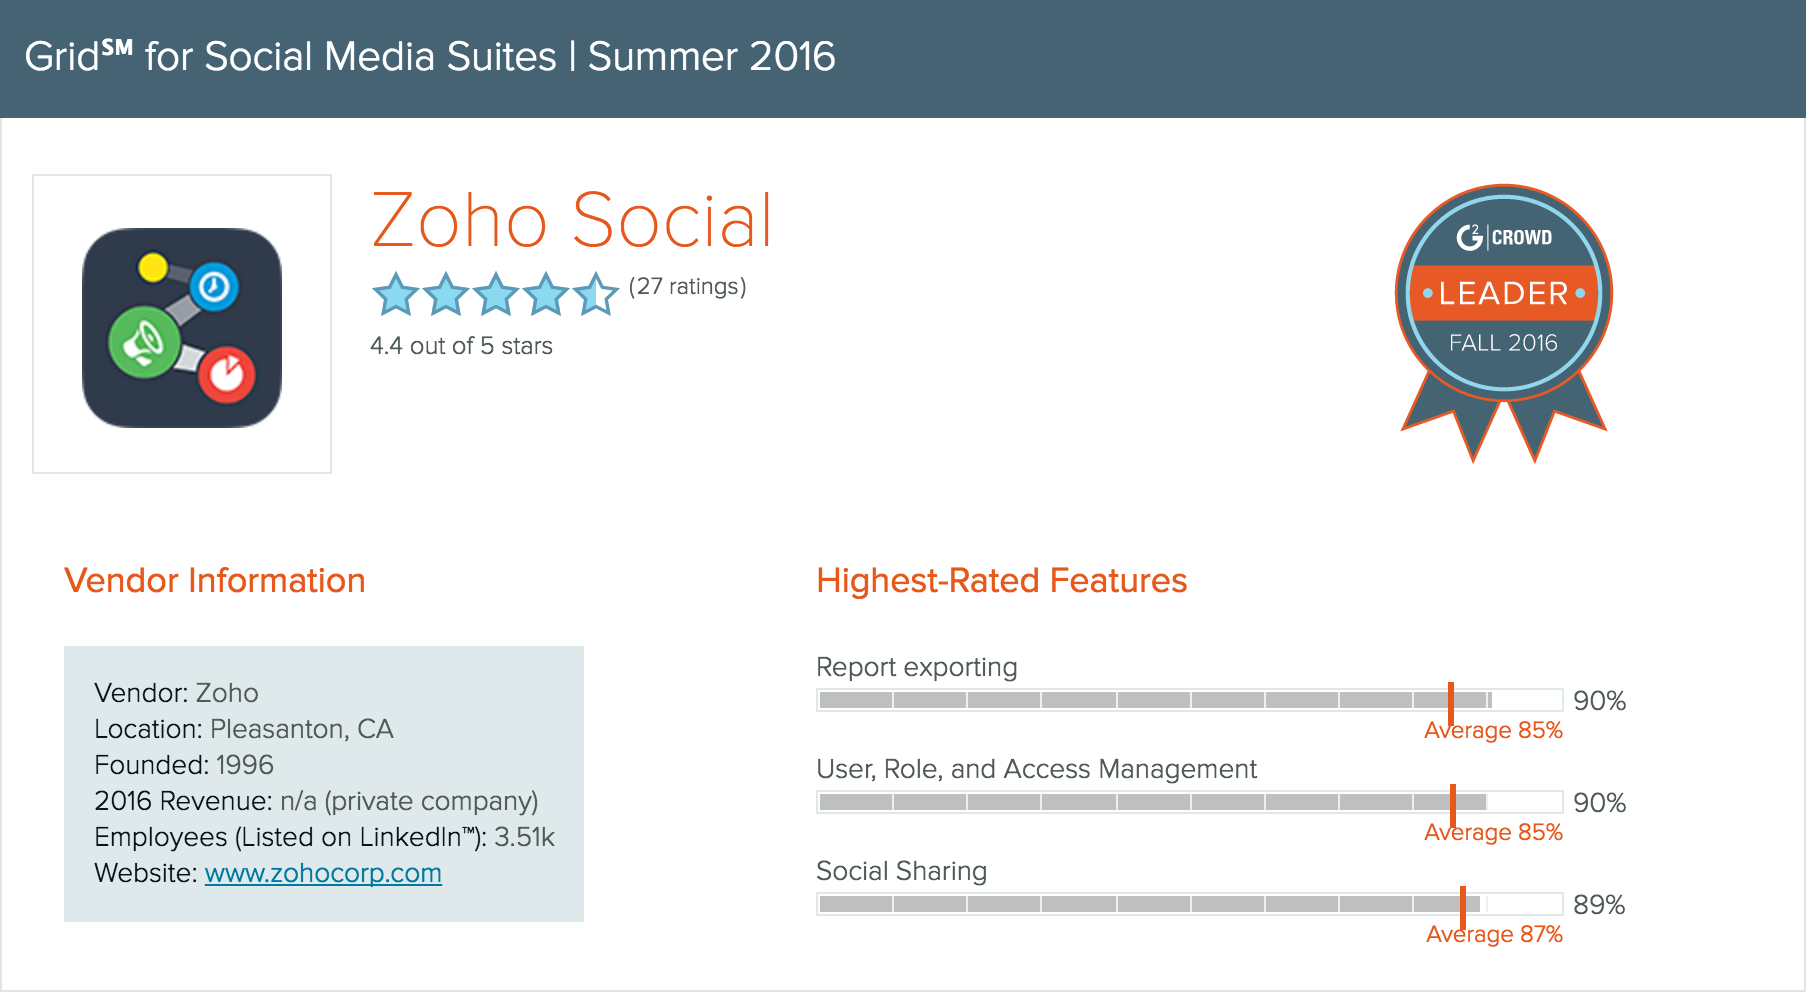 Zoho Social - G2 Crowd Leader Fall 2016 - Social Media Suites